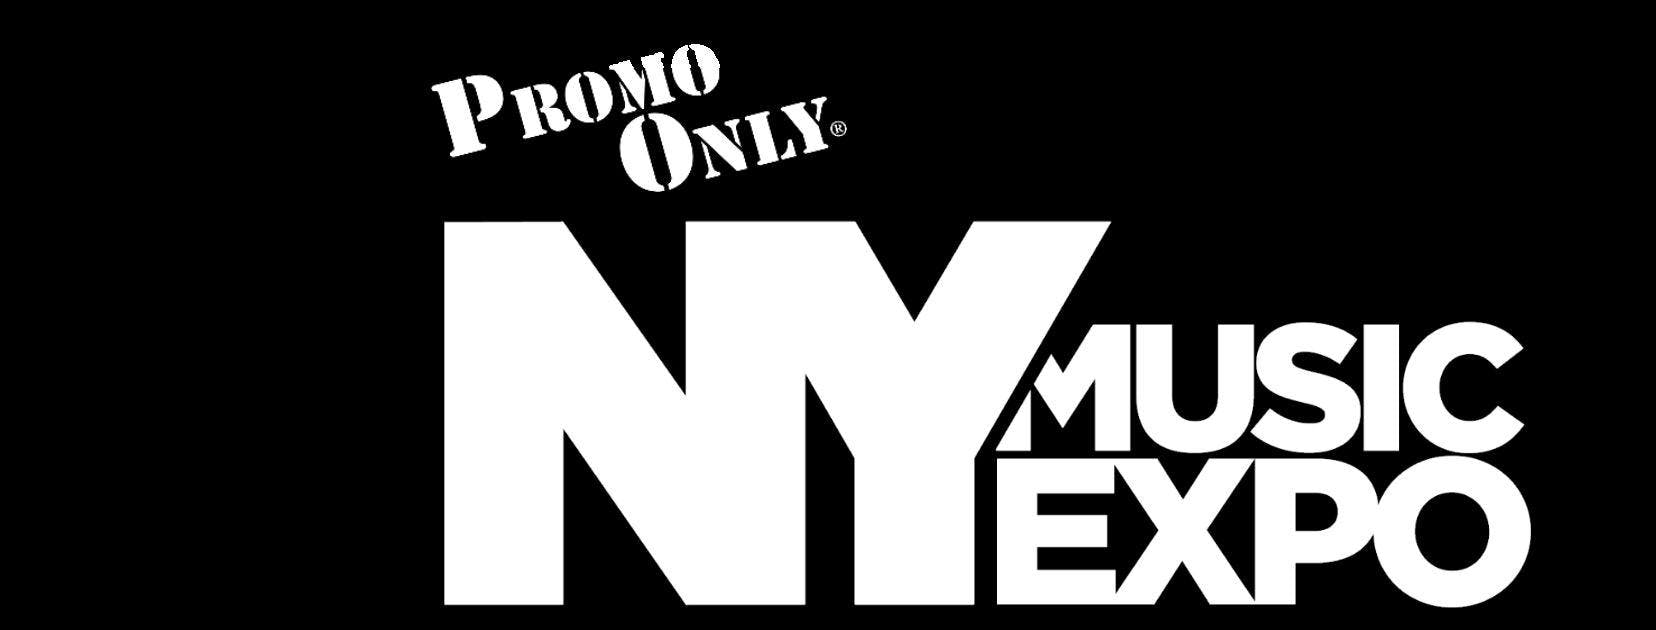 PROMO ONLY NY MUSIC EXPO